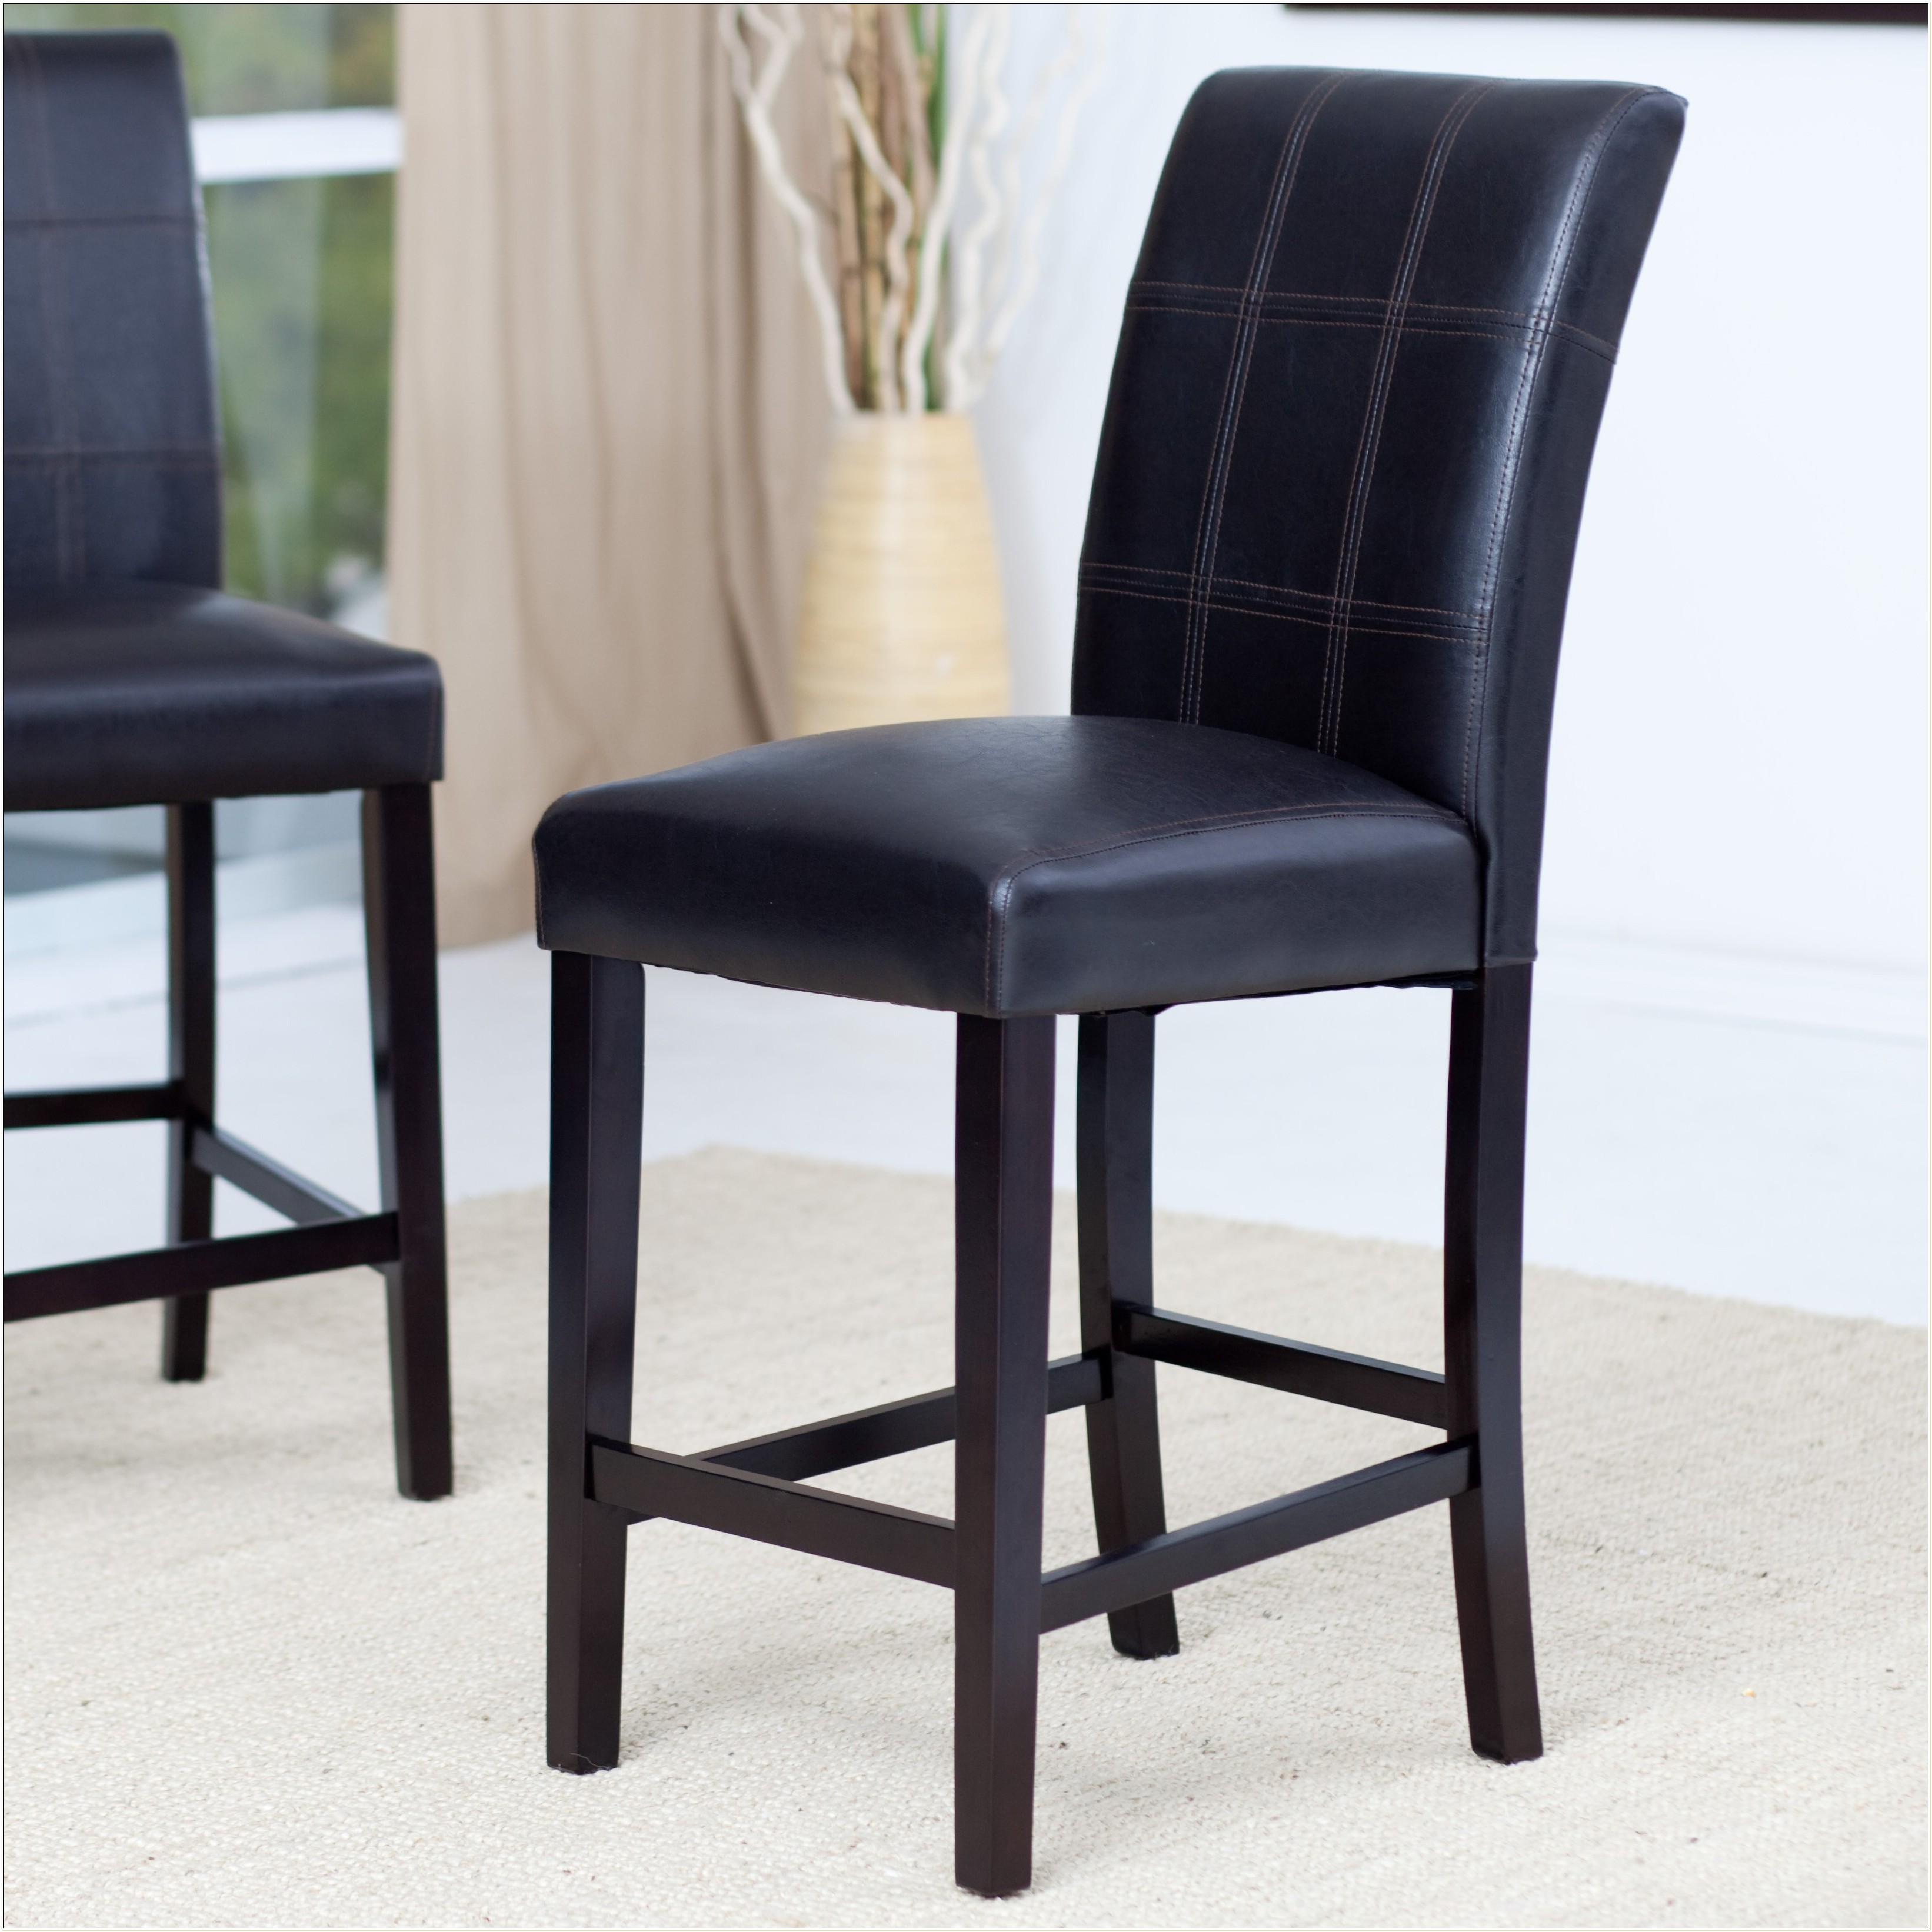 26 Inch Counter Height Chairs